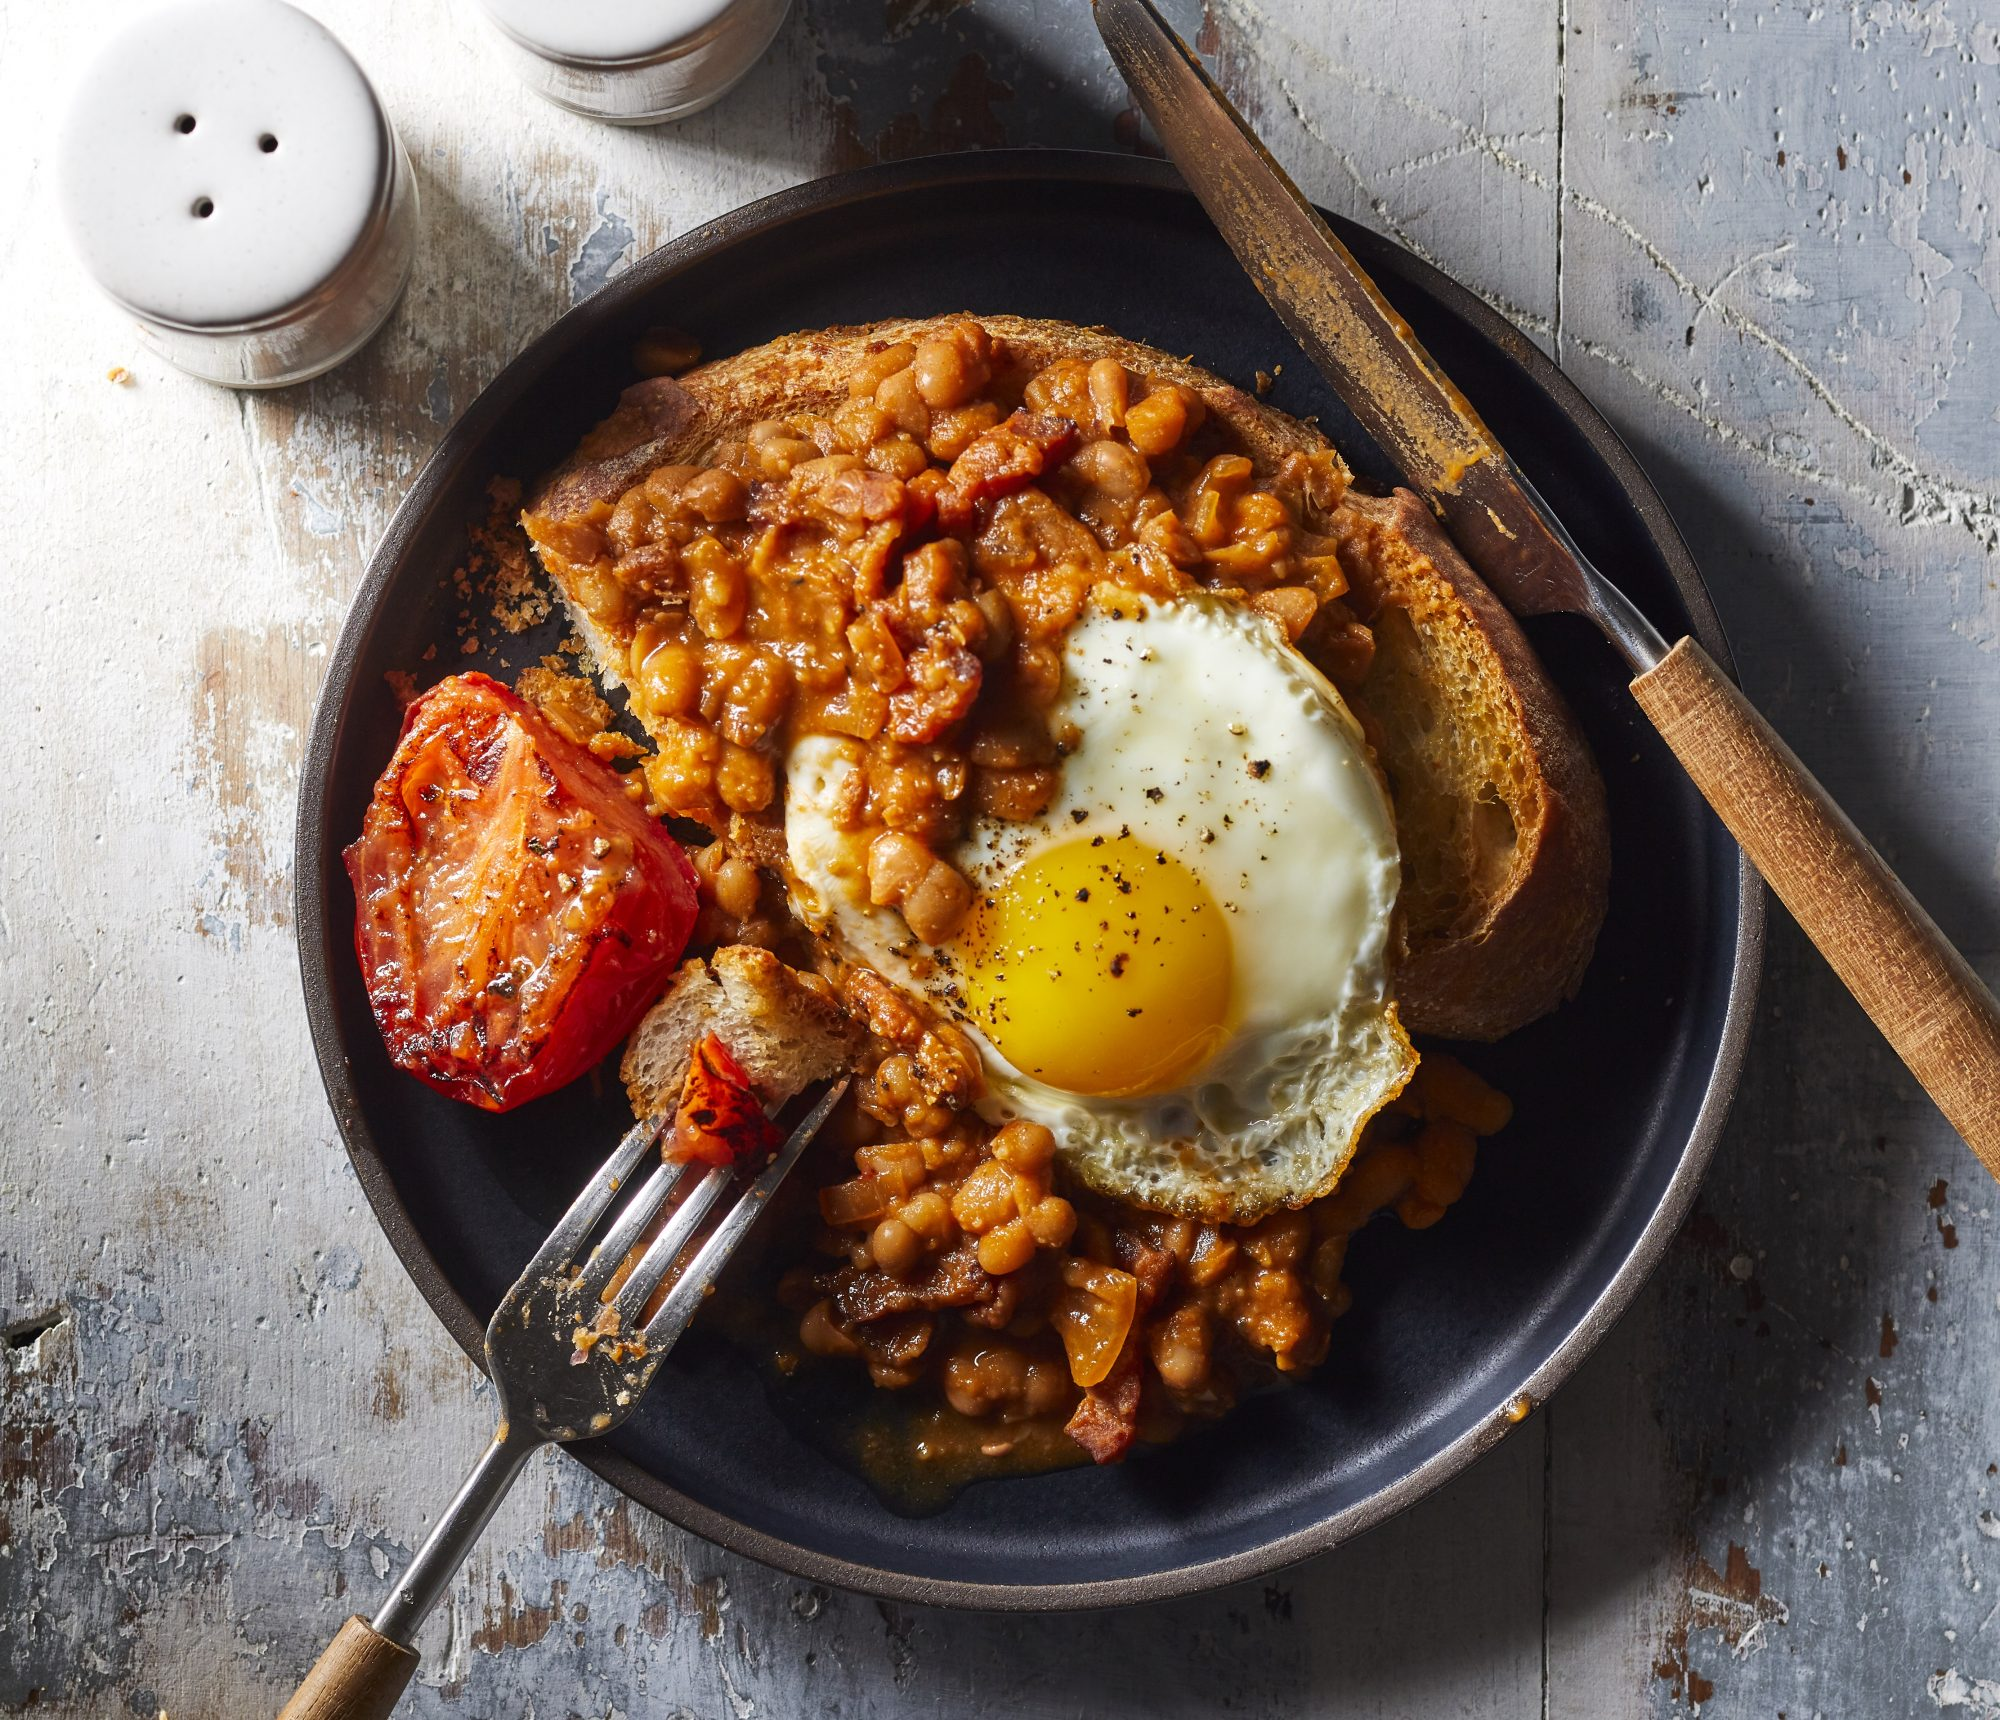 Baked beans and toast with an egg on top